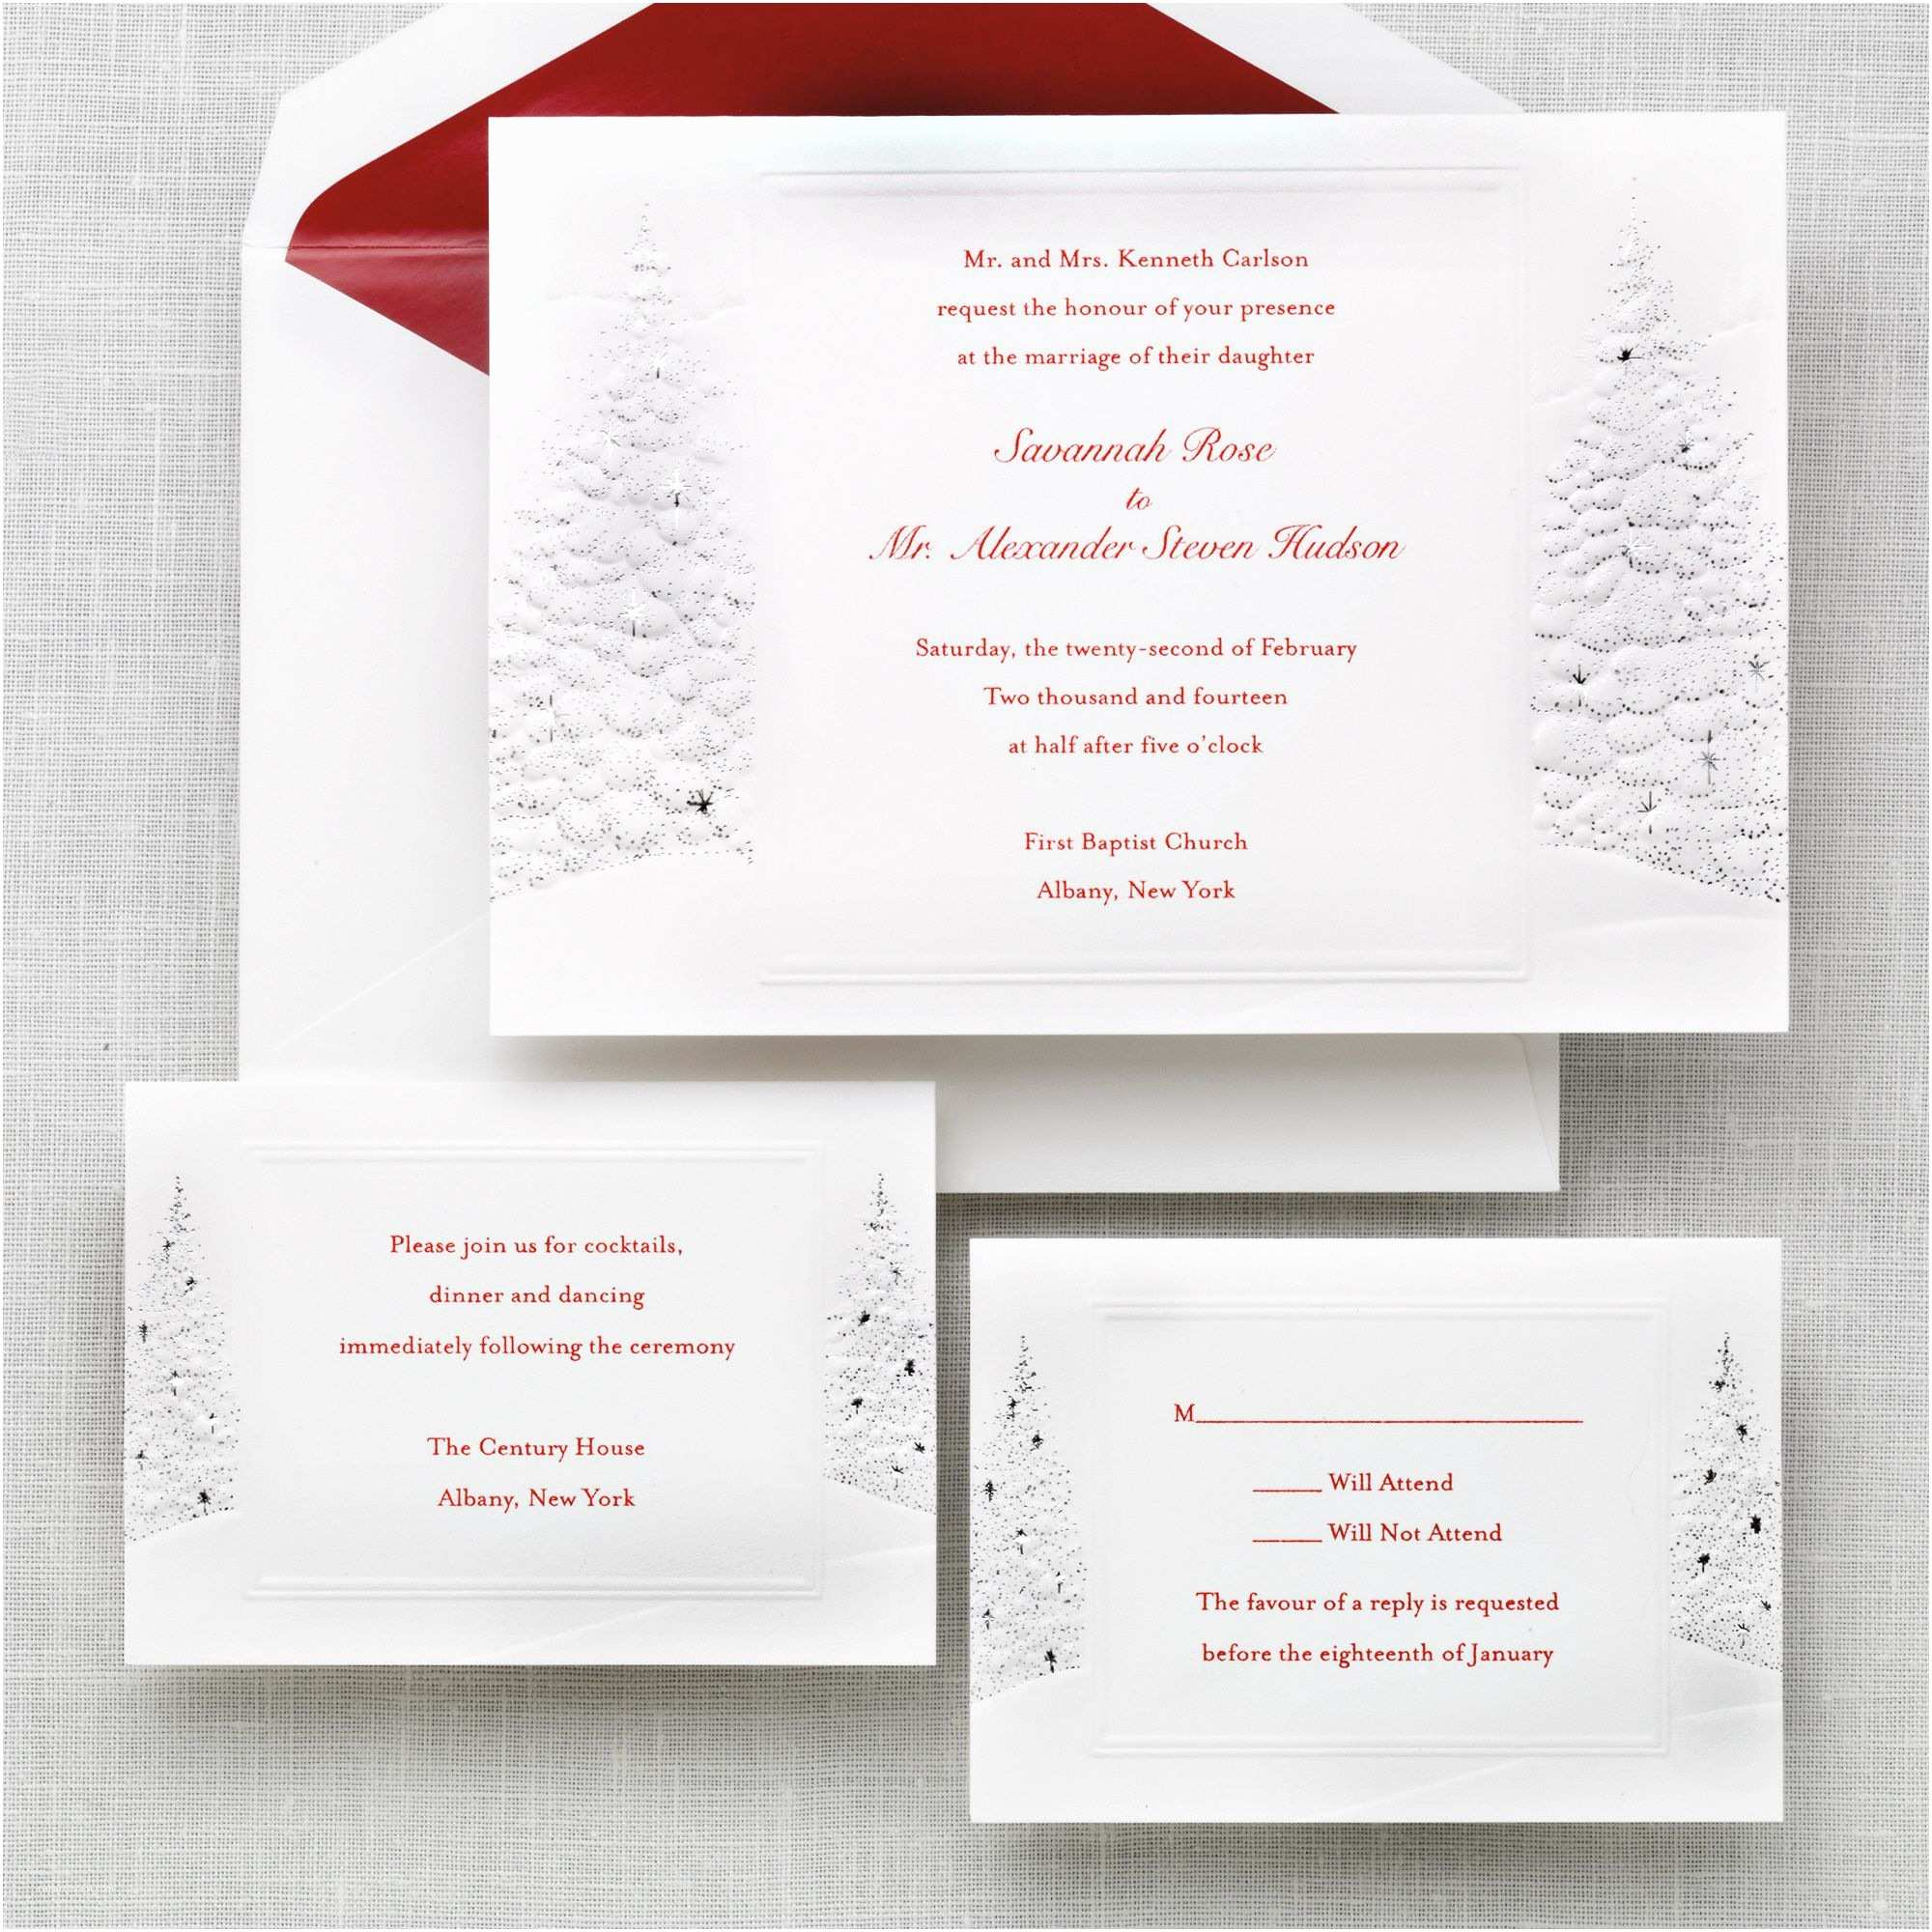 Standard Wedding Invitation Make Your Own Standard Wedding Invitation Size Free